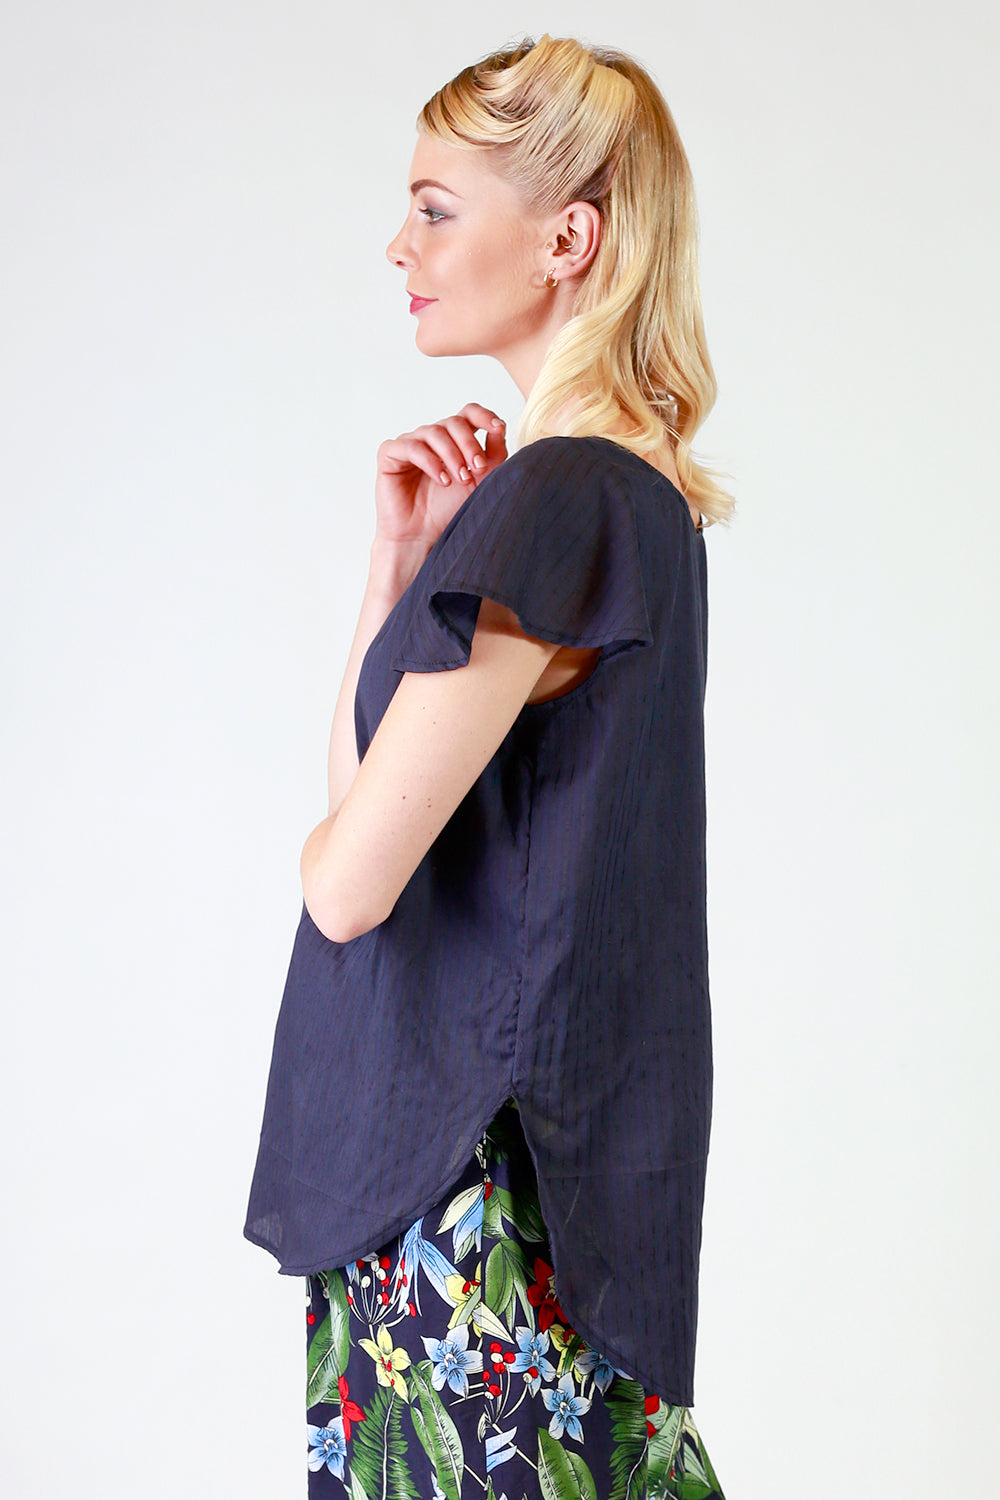 Speedy Delivery Top | Relaxed Fit Top NZ | Designer Fashion NZ | Tops NZ